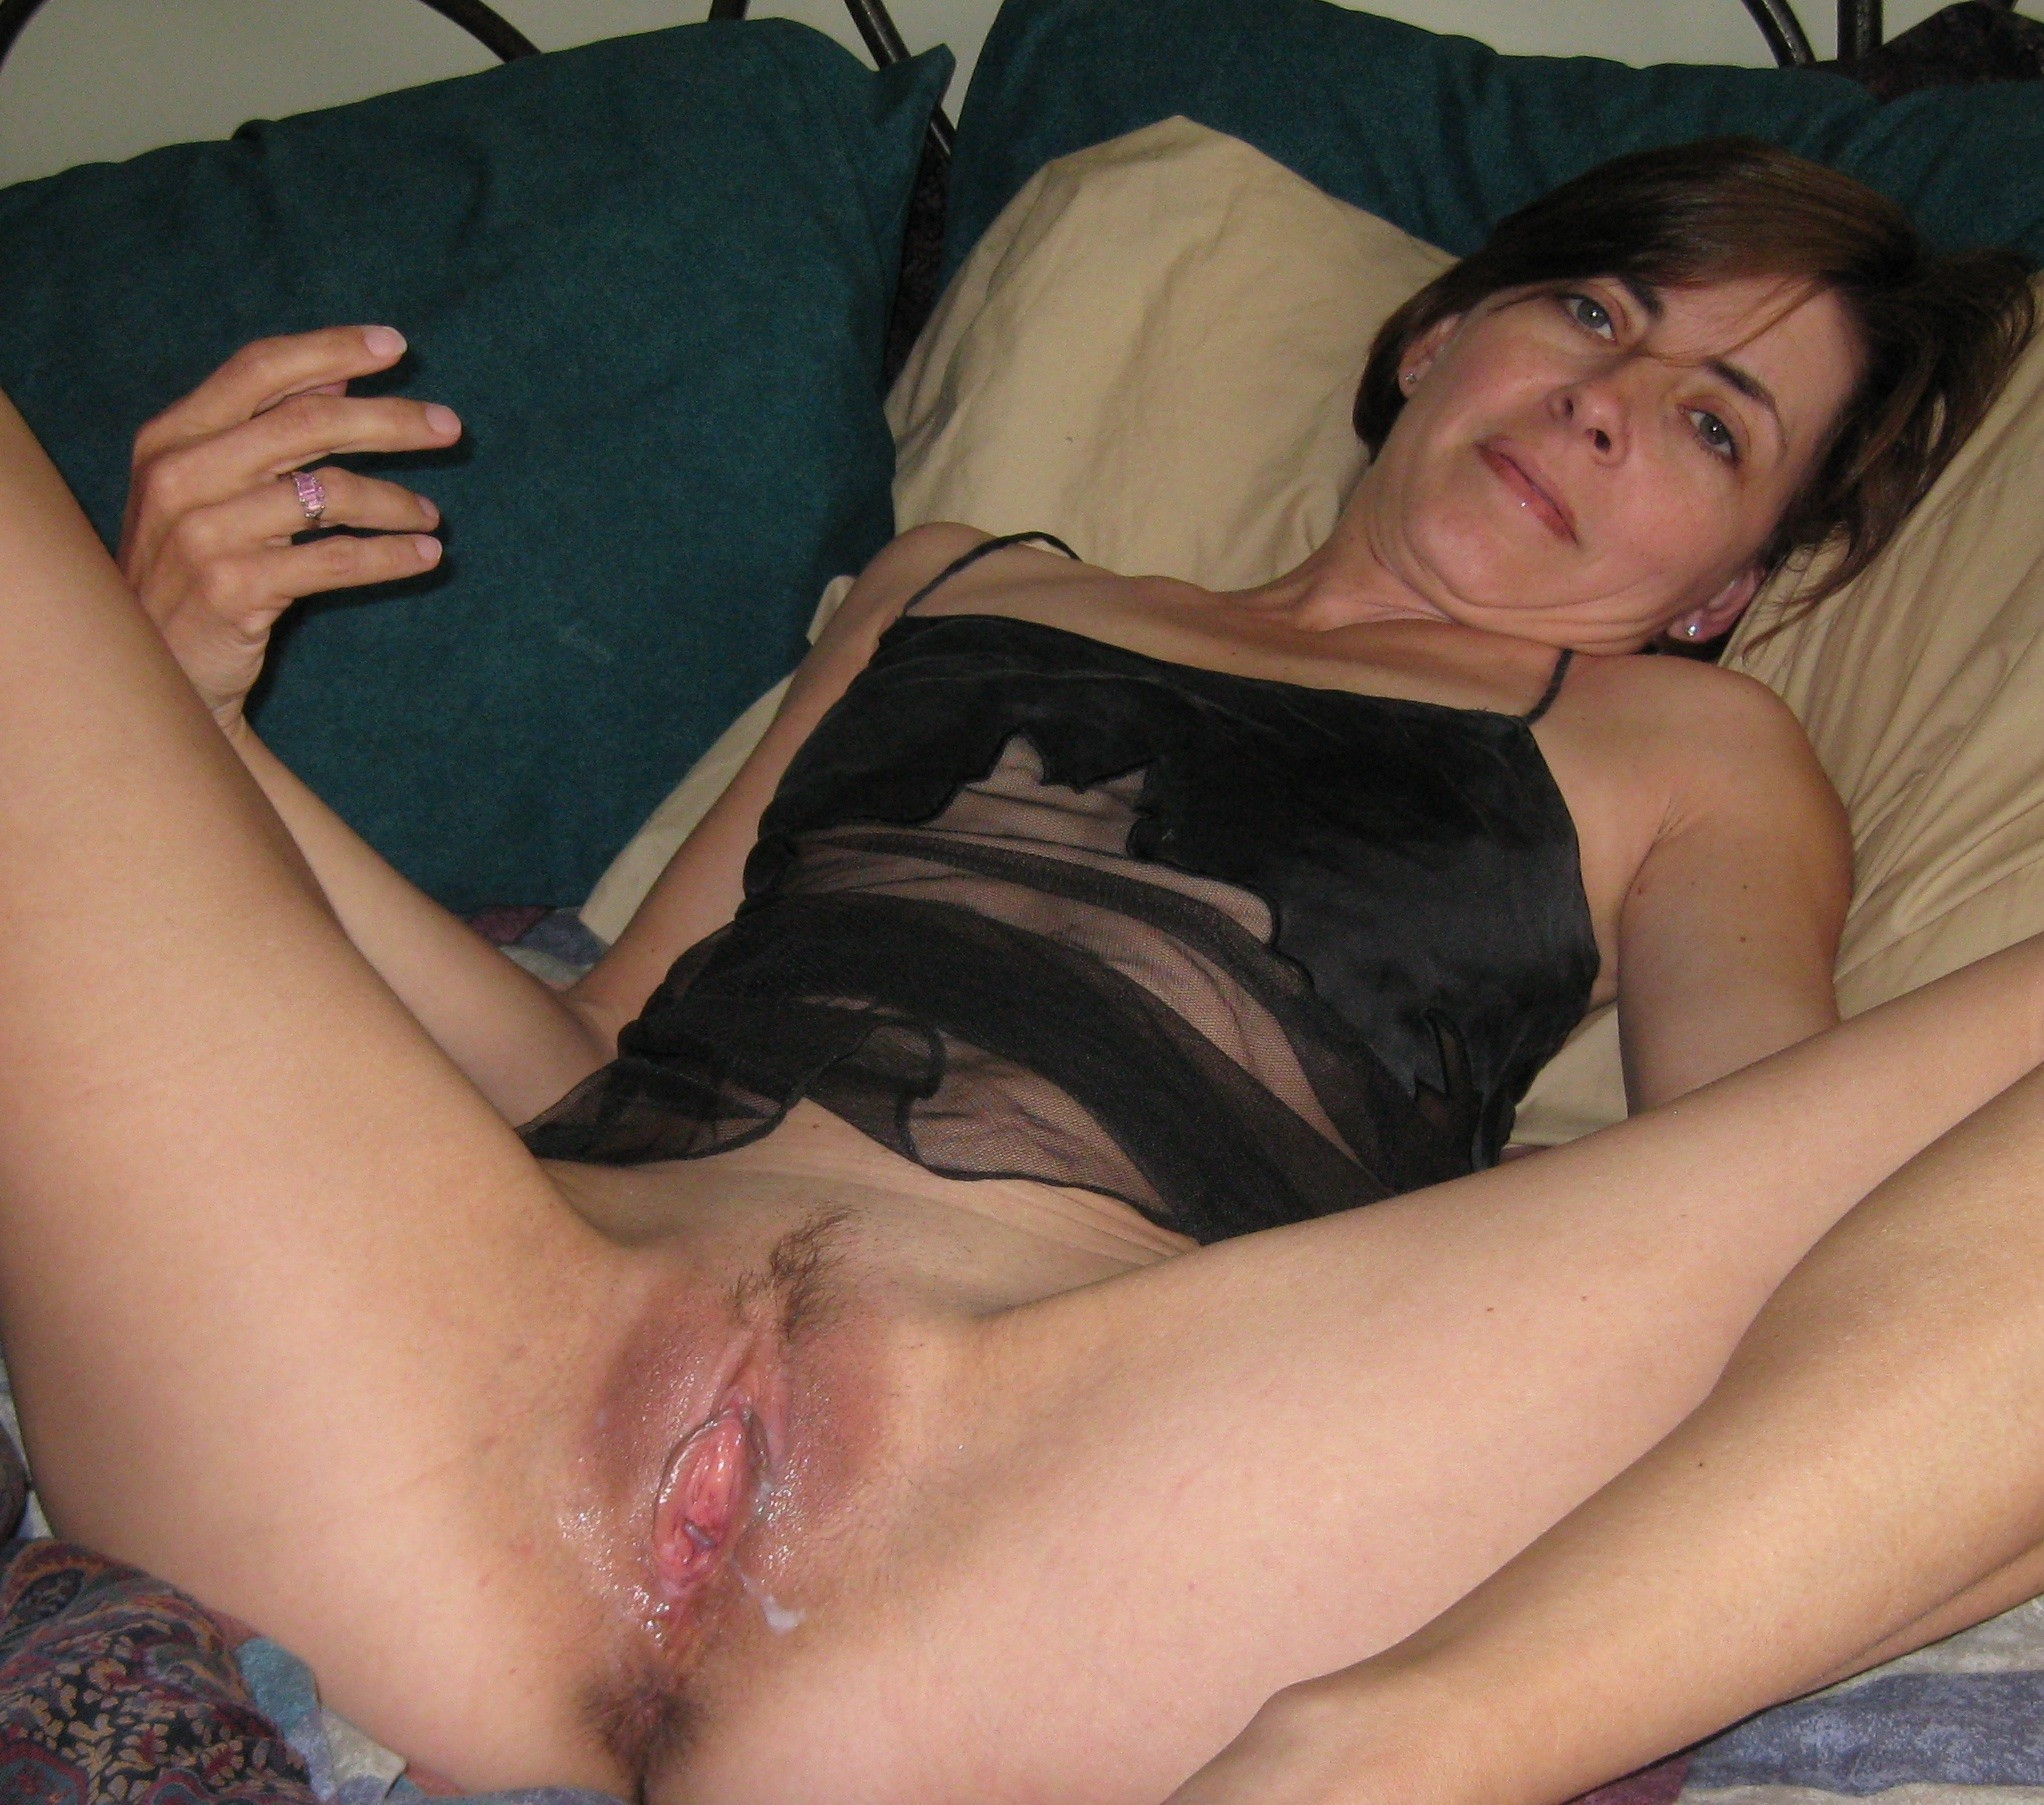 Hot soccer mom pictures